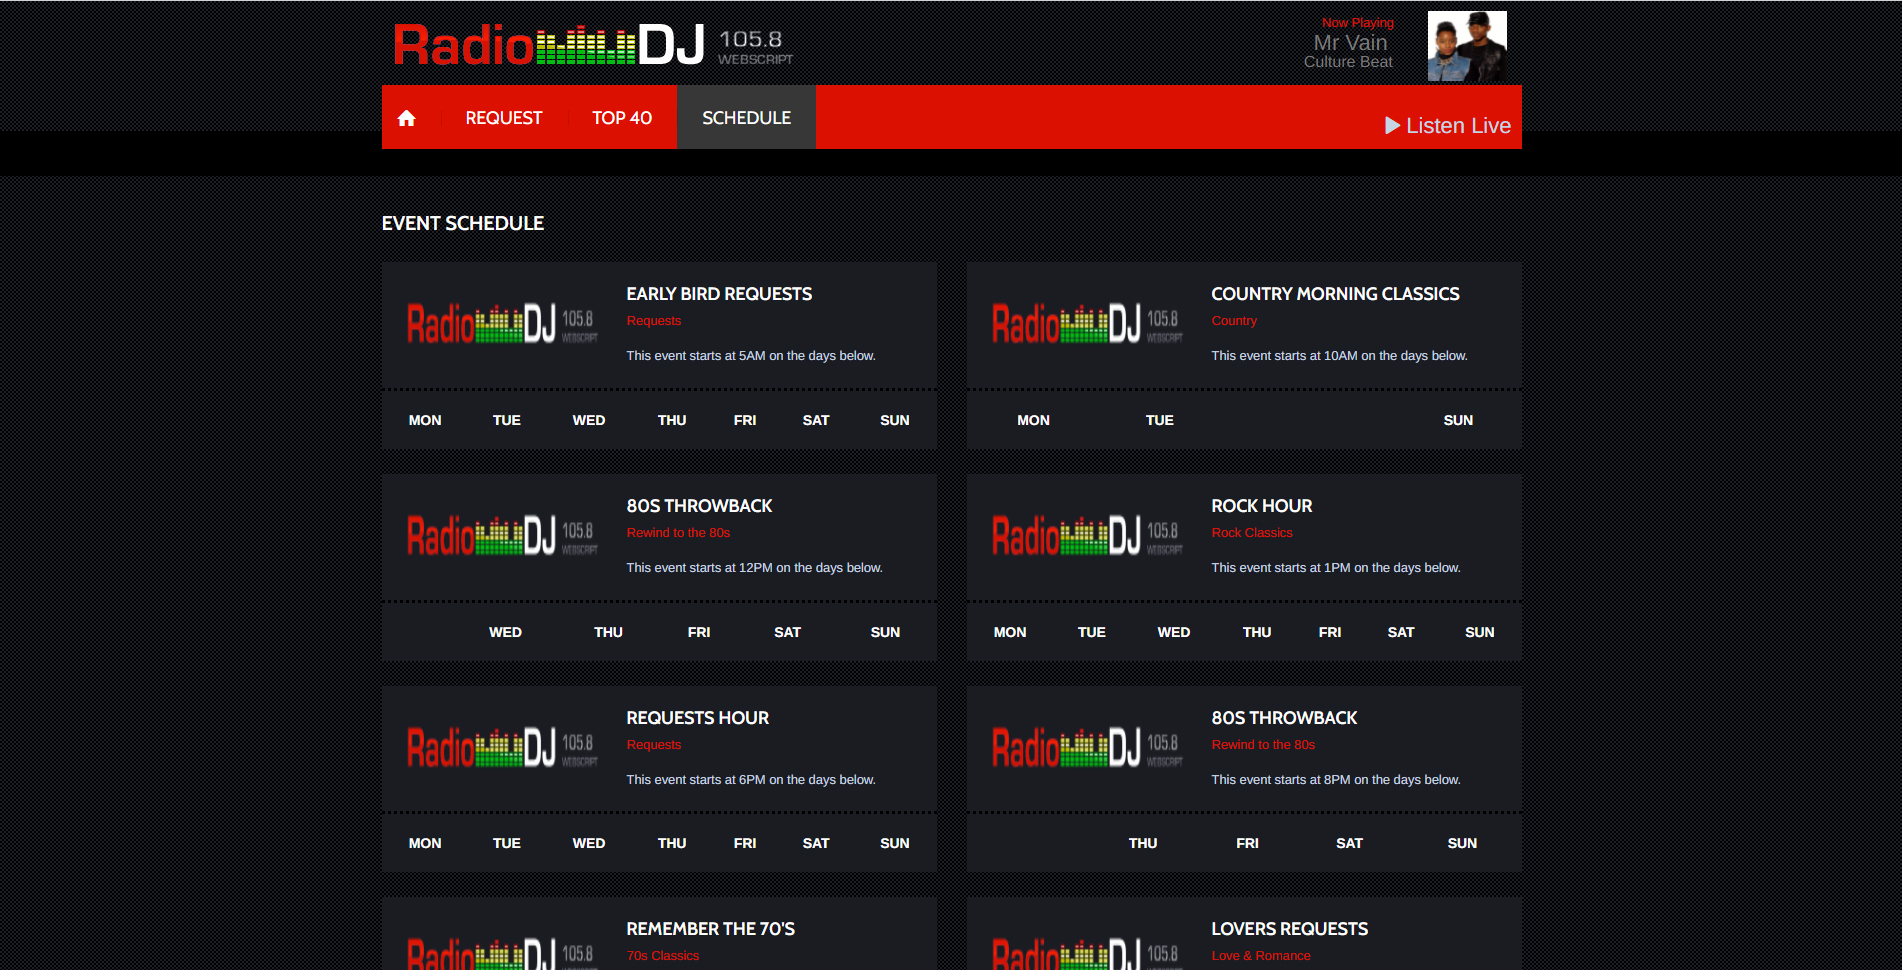 RadioDJ 105.8R Webscript